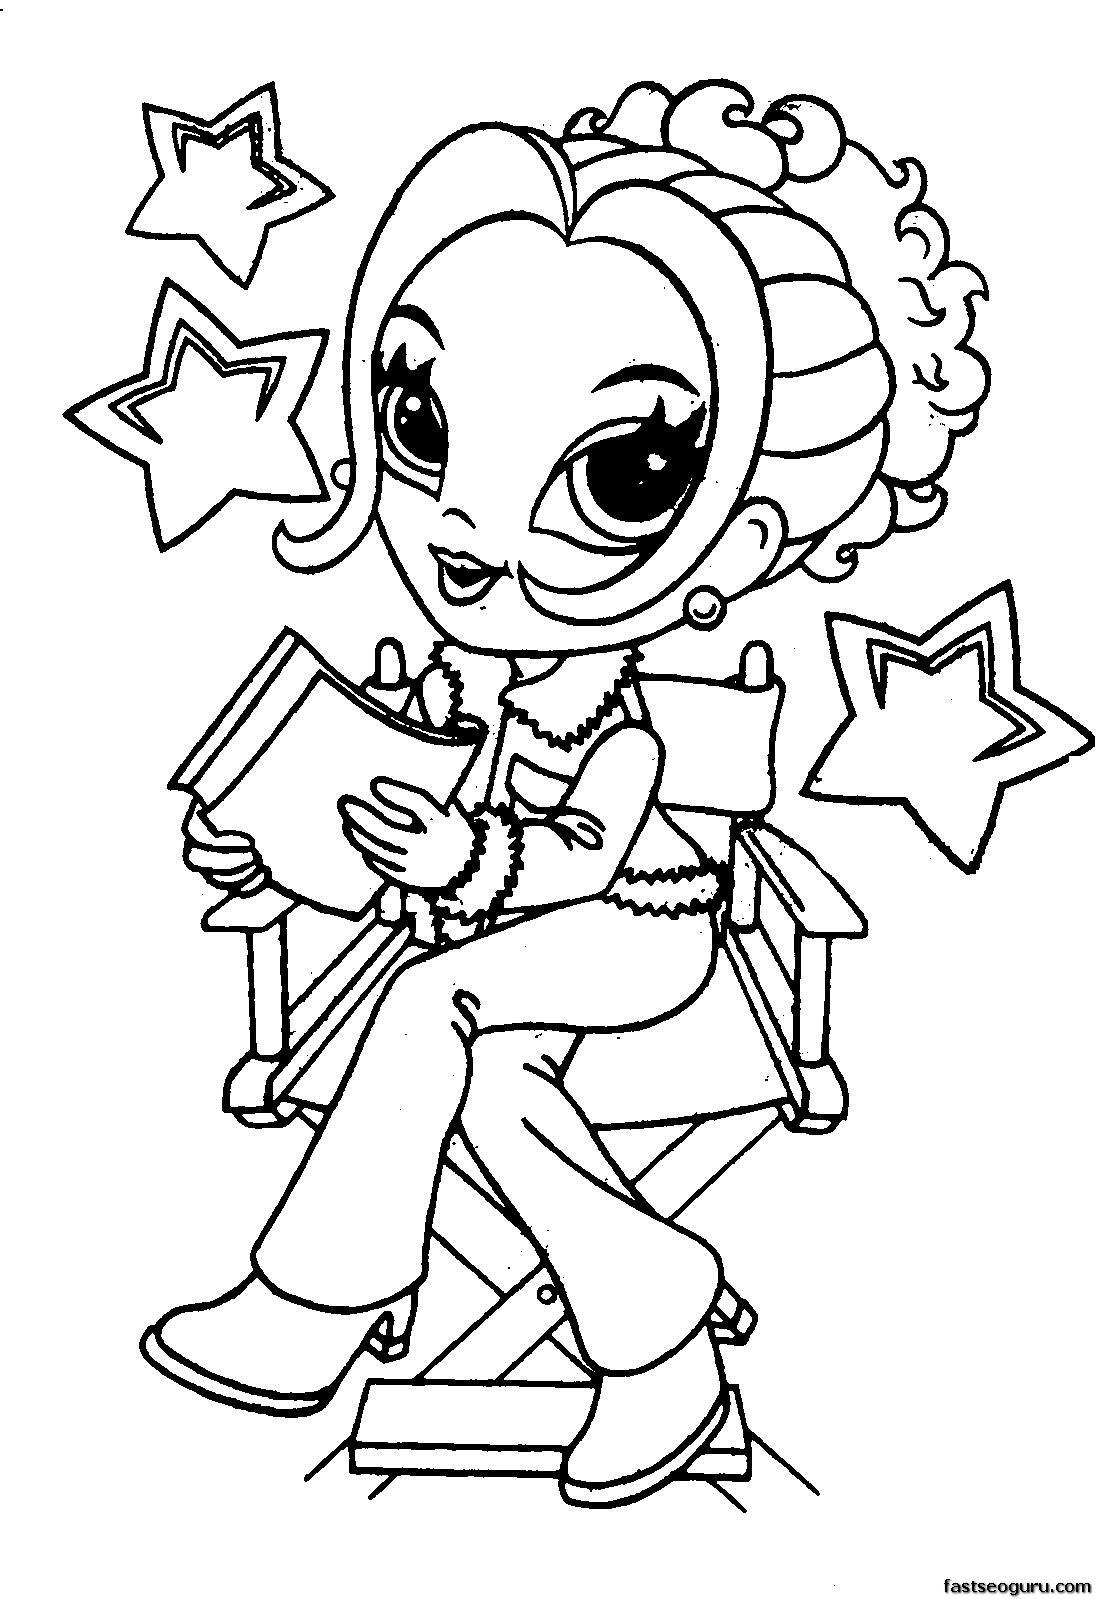 coloring pages for girls 10 and up | Only Coloring Pages